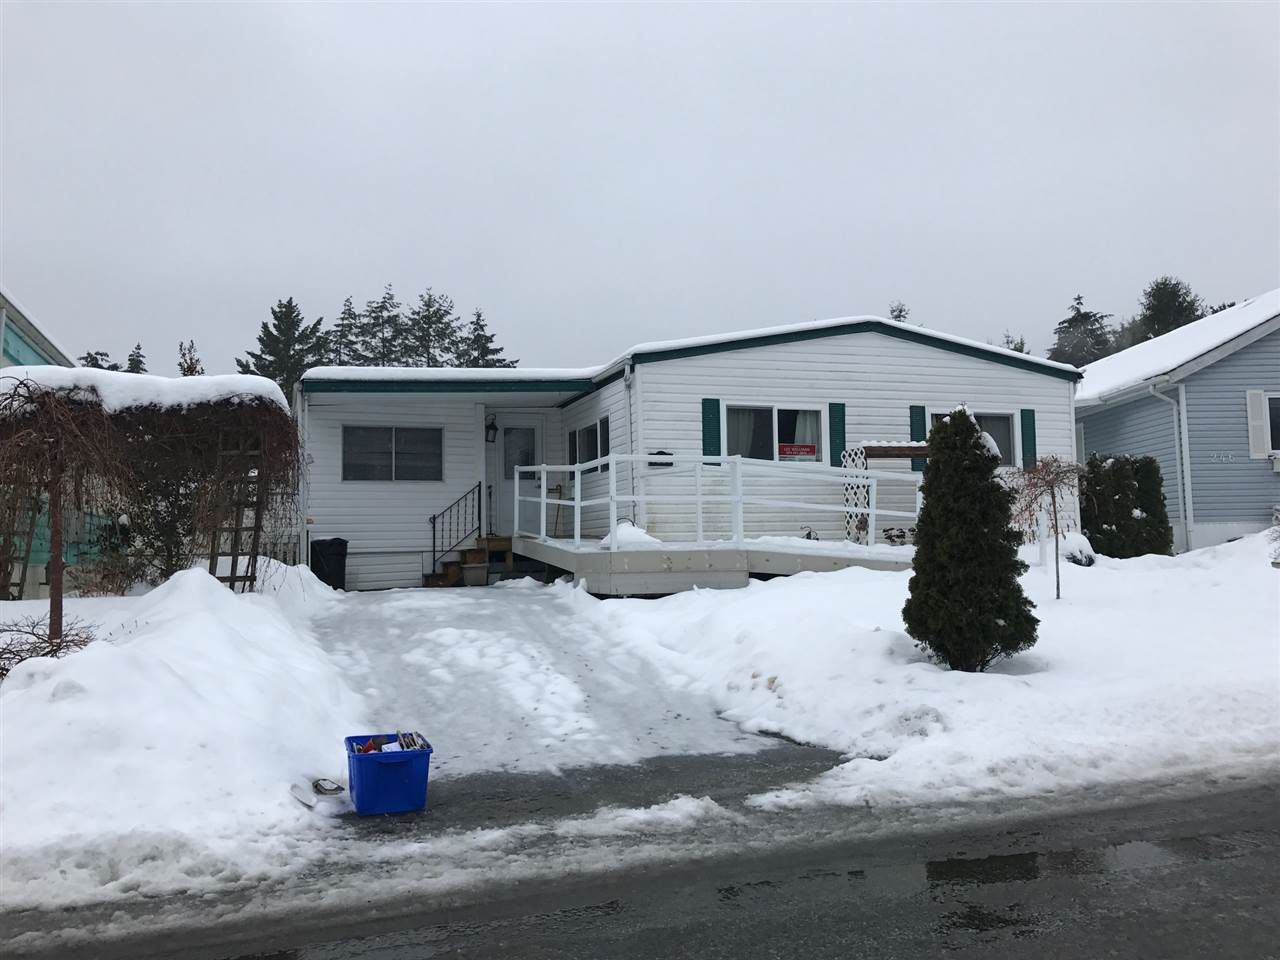 "Main Photo: 248 1840 160 Street in Surrey: King George Corridor Manufactured Home for sale in ""BREAKAWAY BAYS"" (South Surrey White Rock)  : MLS®# R2138051"